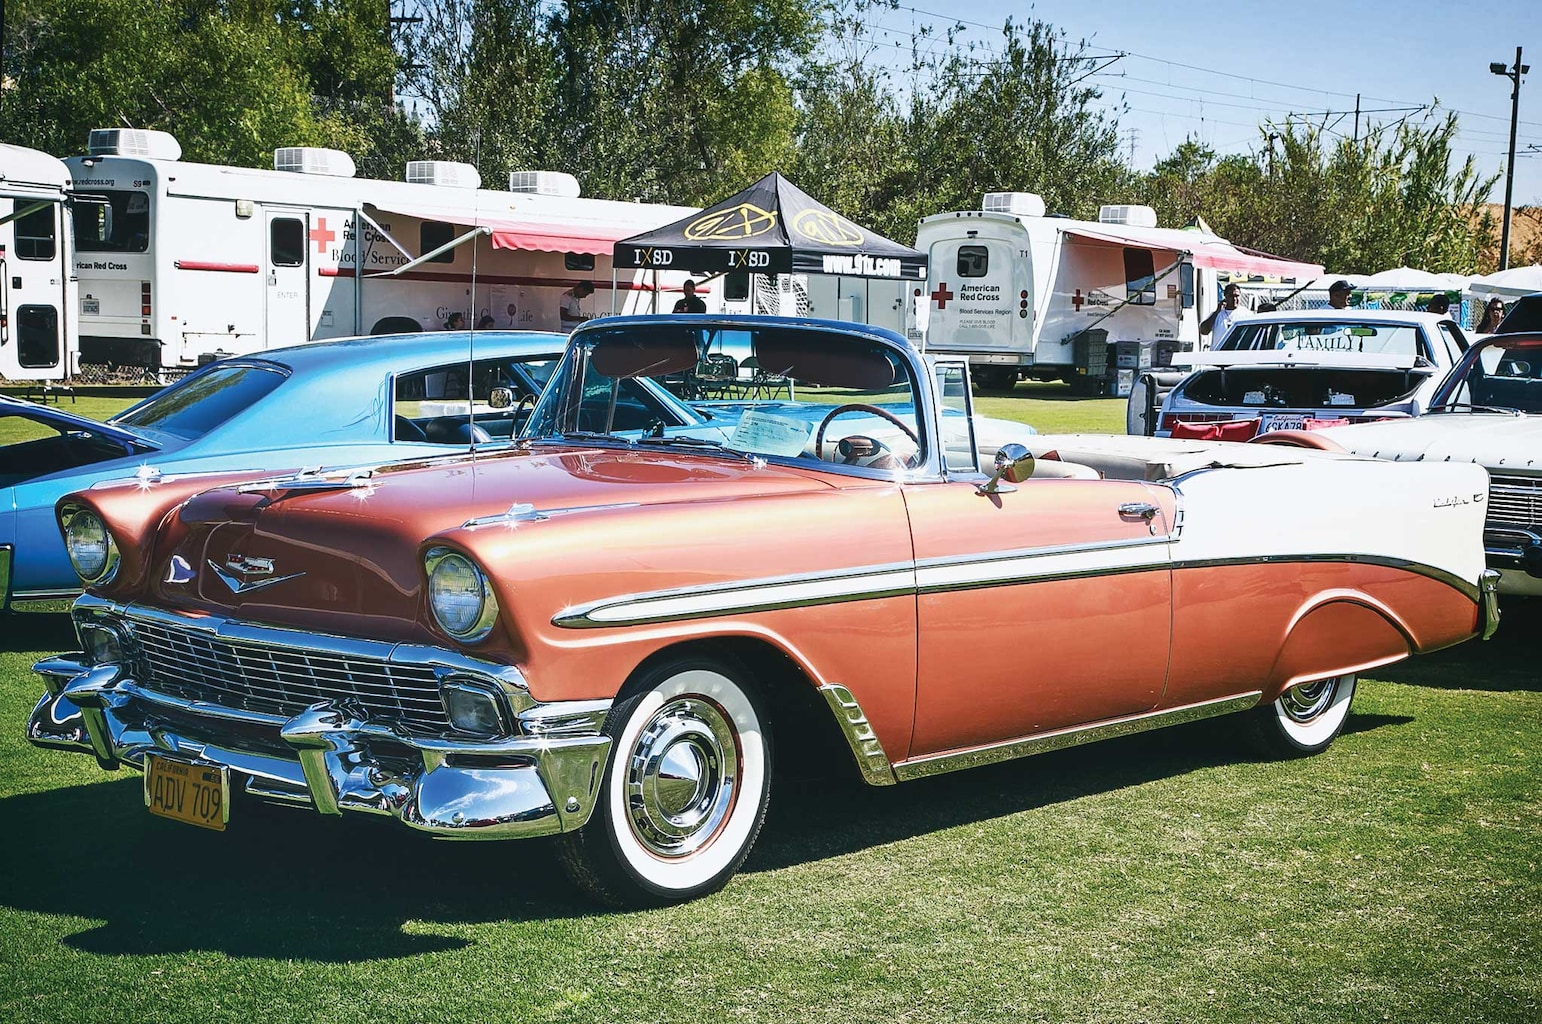 Bombs, traditionals, and even originals like this '56 Bel Air showed up to support the cause.